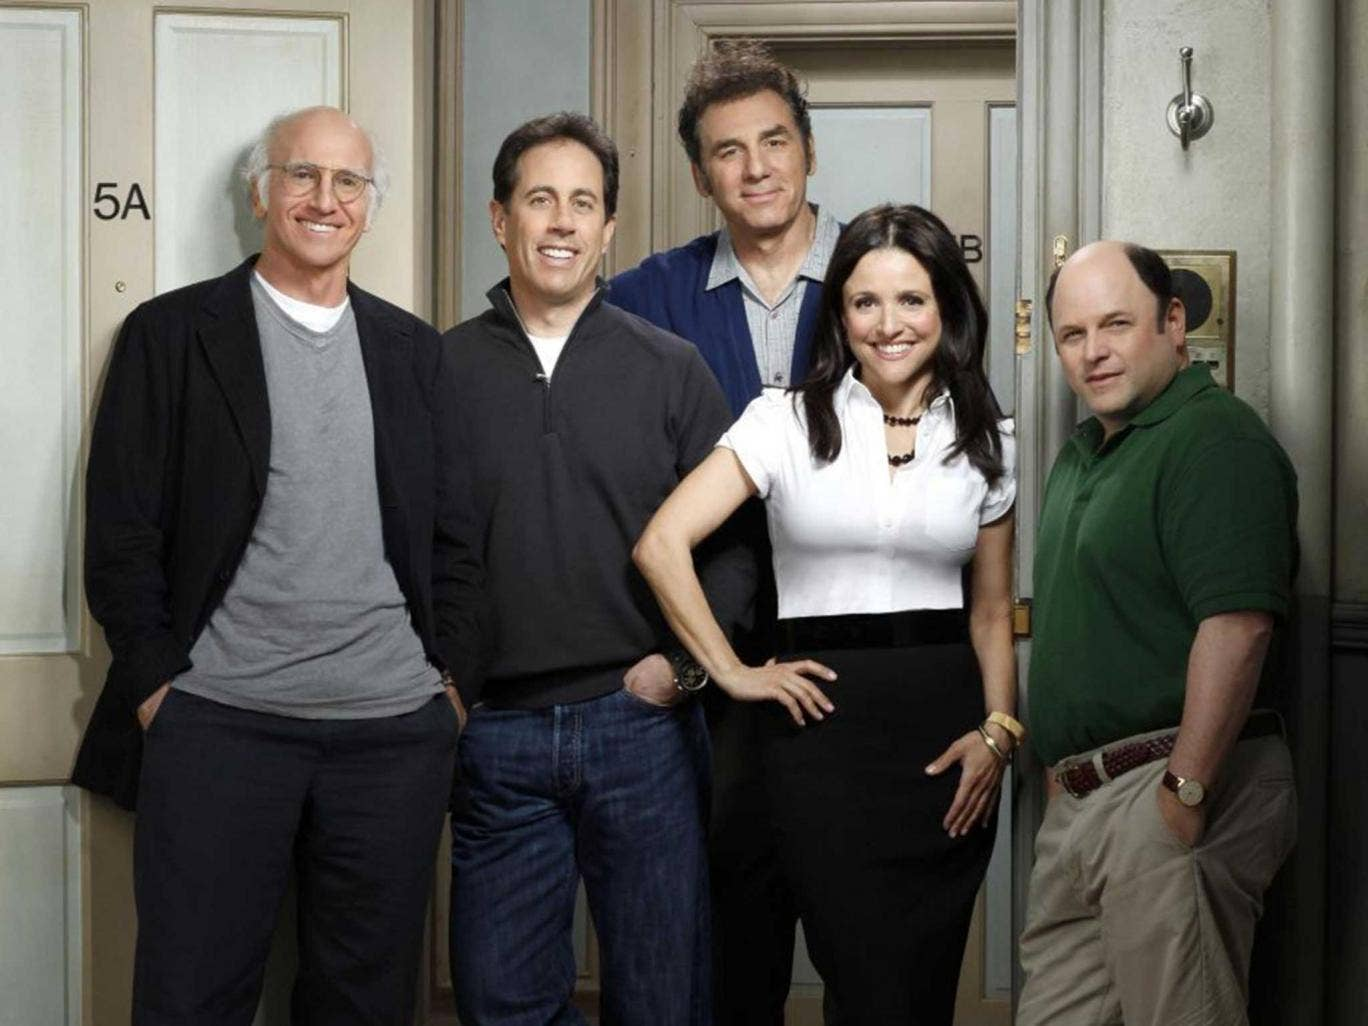 Larry David with the cast of Parks and Recreation